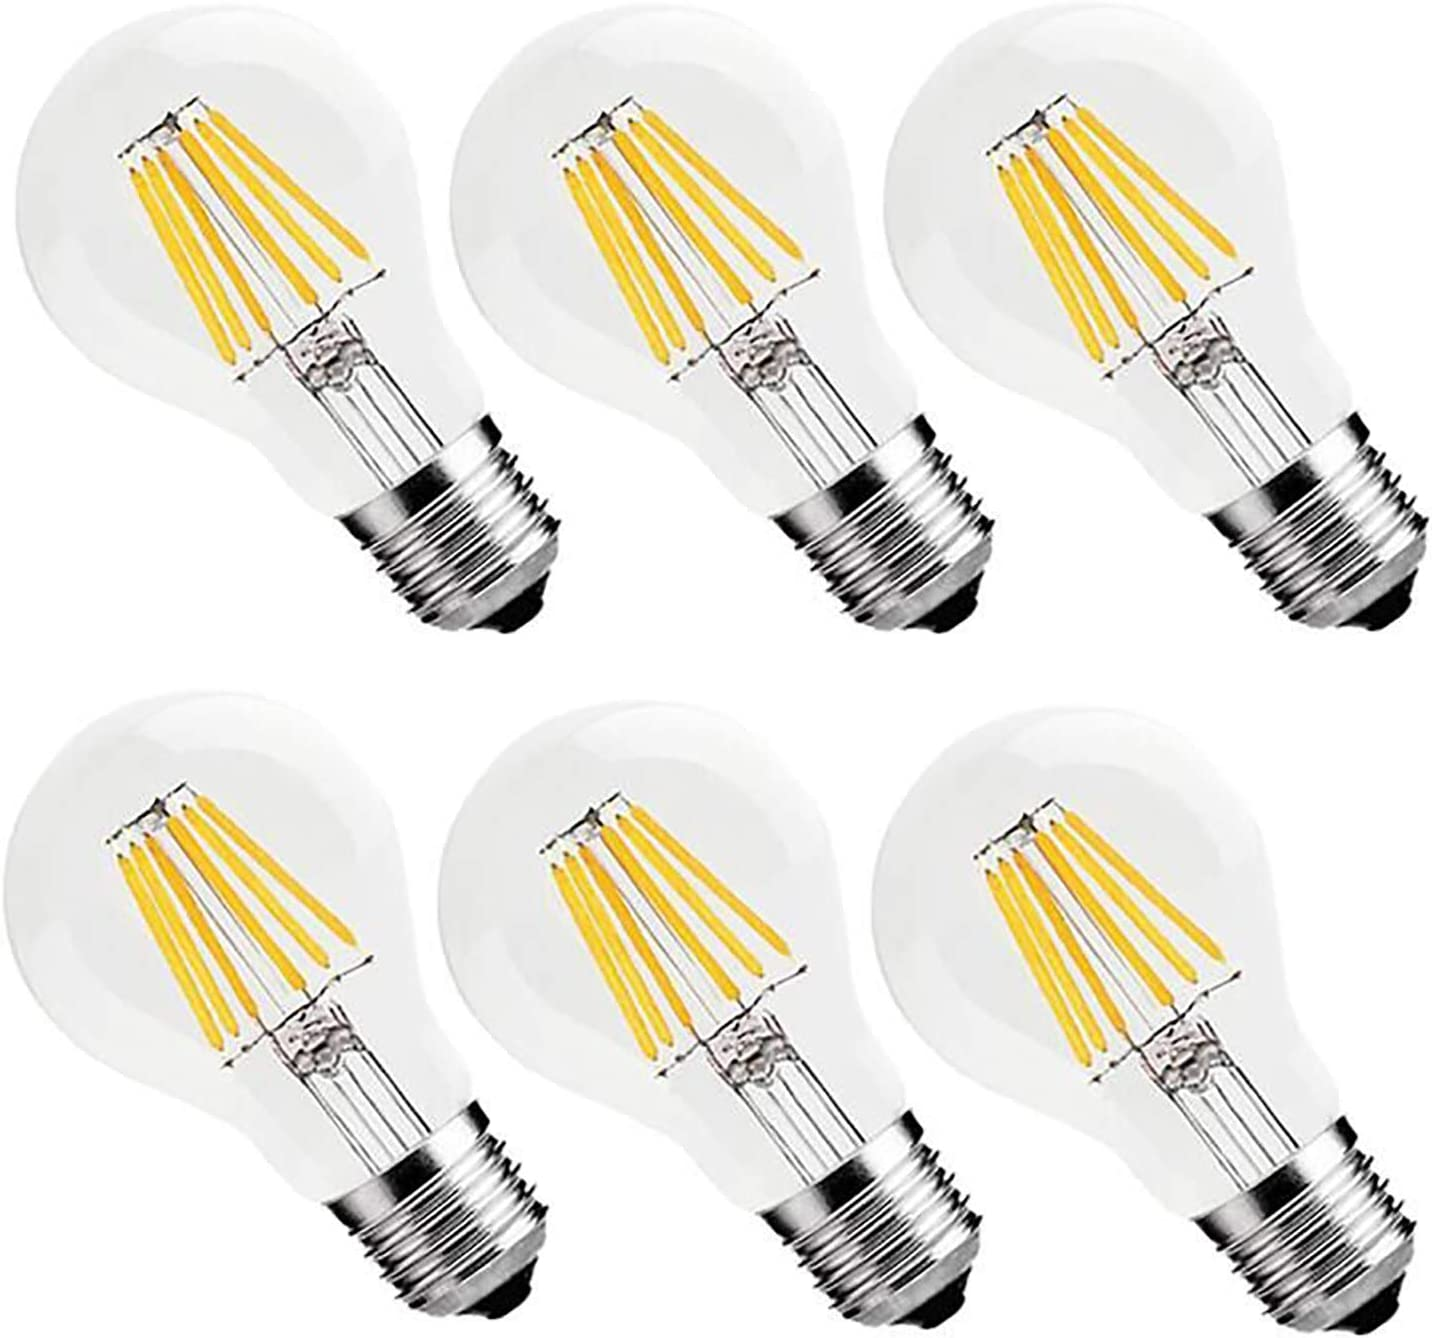 Vintage Led Filament Bulb 6w 60w Equivalent Classic Edison A19 A60 Led Light Bulbs E26 Medium Base Lamp 2700k Warm White 600 Lumens Dimmable Pack Of 6